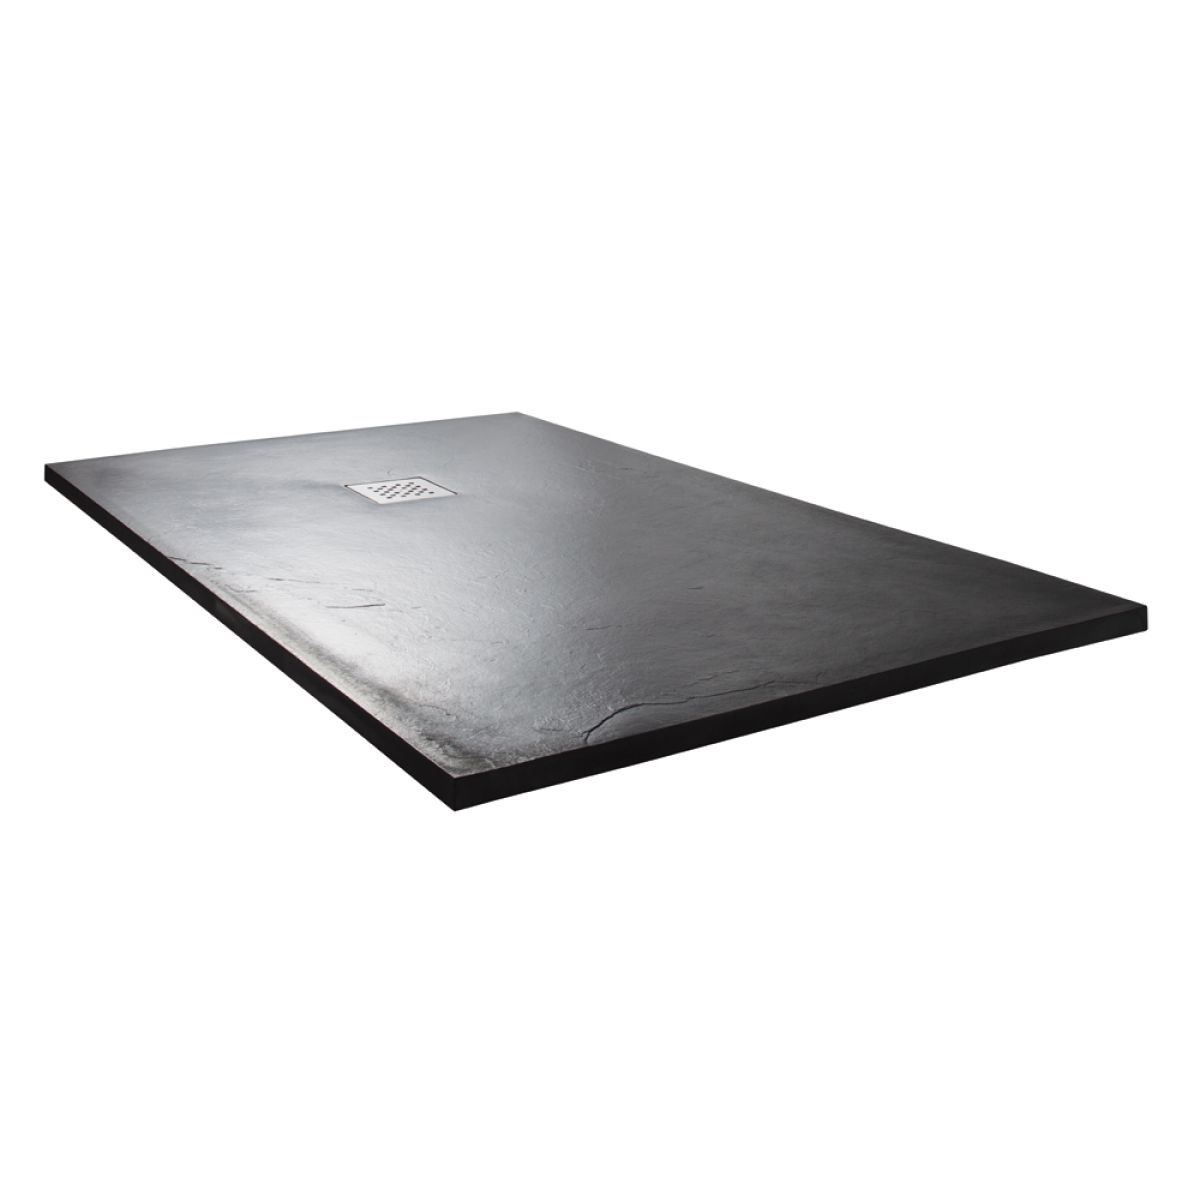 Cassellie Cass Stone Anthracite Slate Effect Rectangular Shower Tray 1500 x 800mm